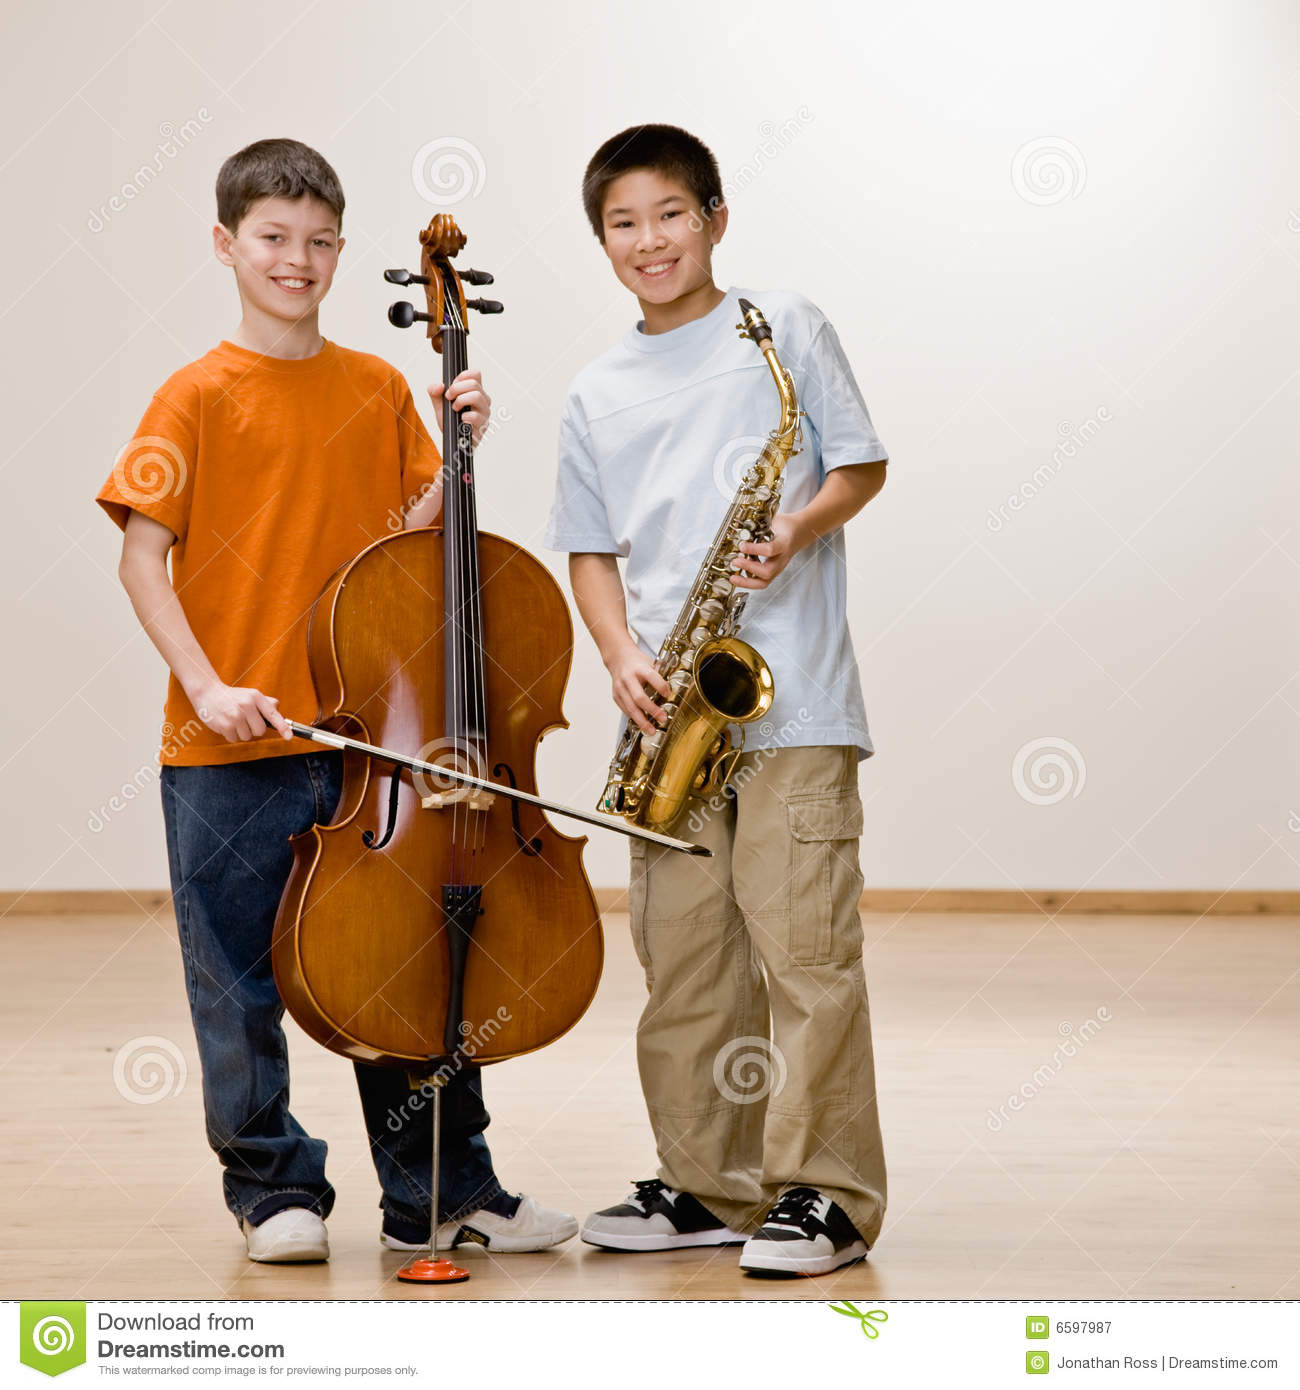 Boys Standing With Cello And Saxophone Royalty Free Stock ...